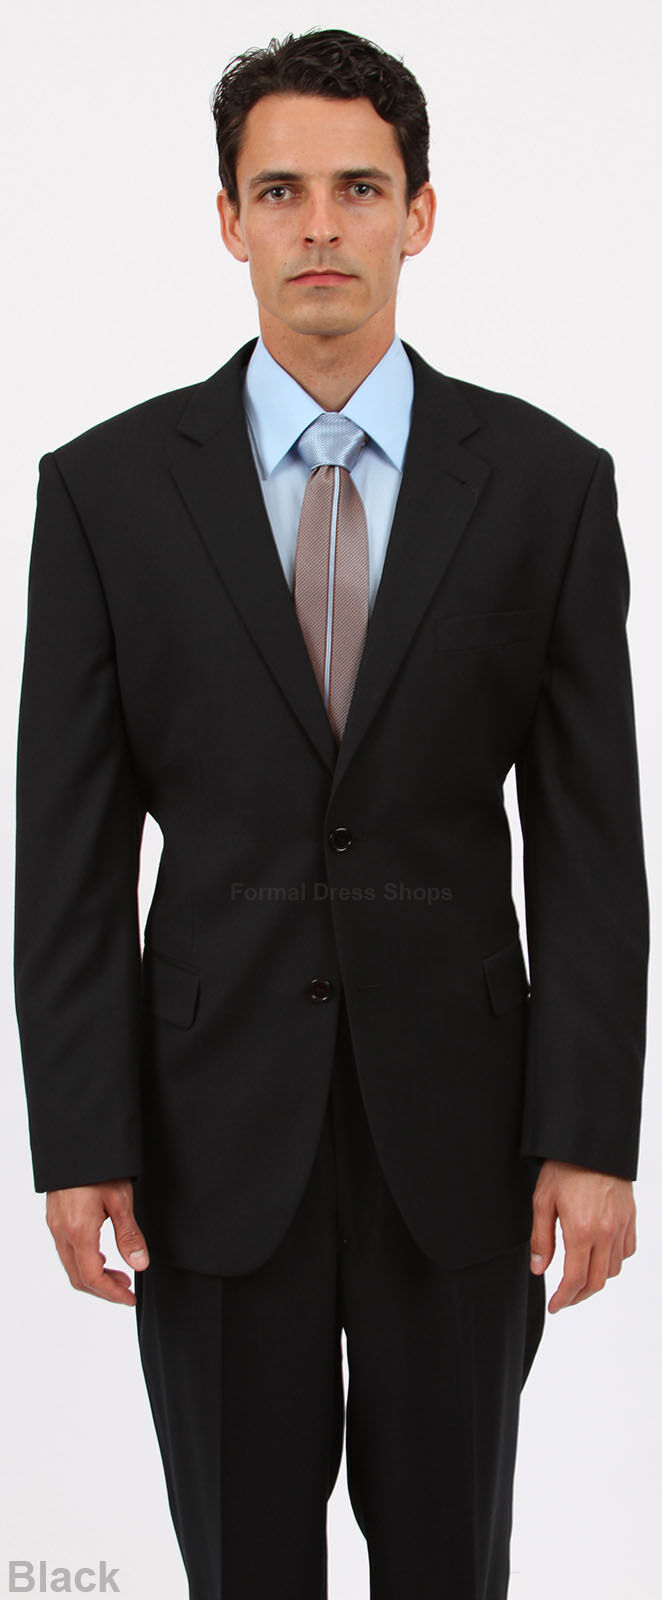 NEW TWO PIECE MEN'S HERRINGBONE SUIT FORMAL PROM MARINE CORPS BALL DANCE ATTIRE